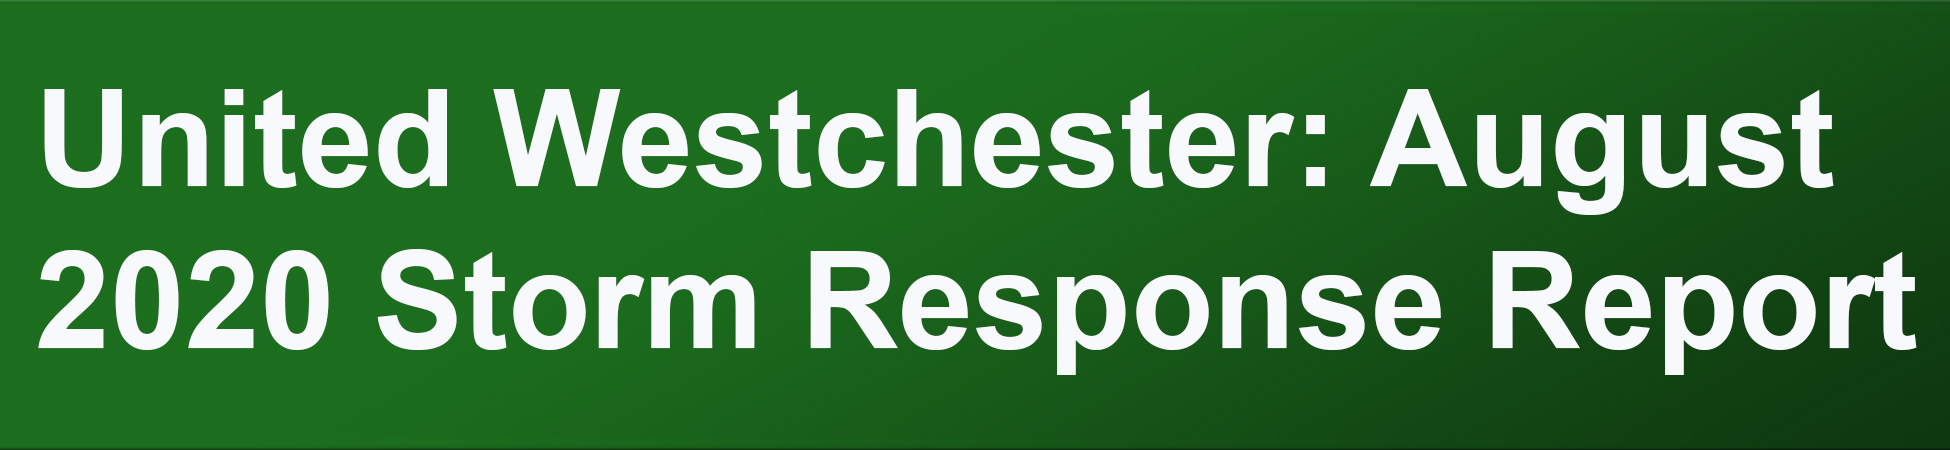 United Westchester August 2020 Storm Response Report